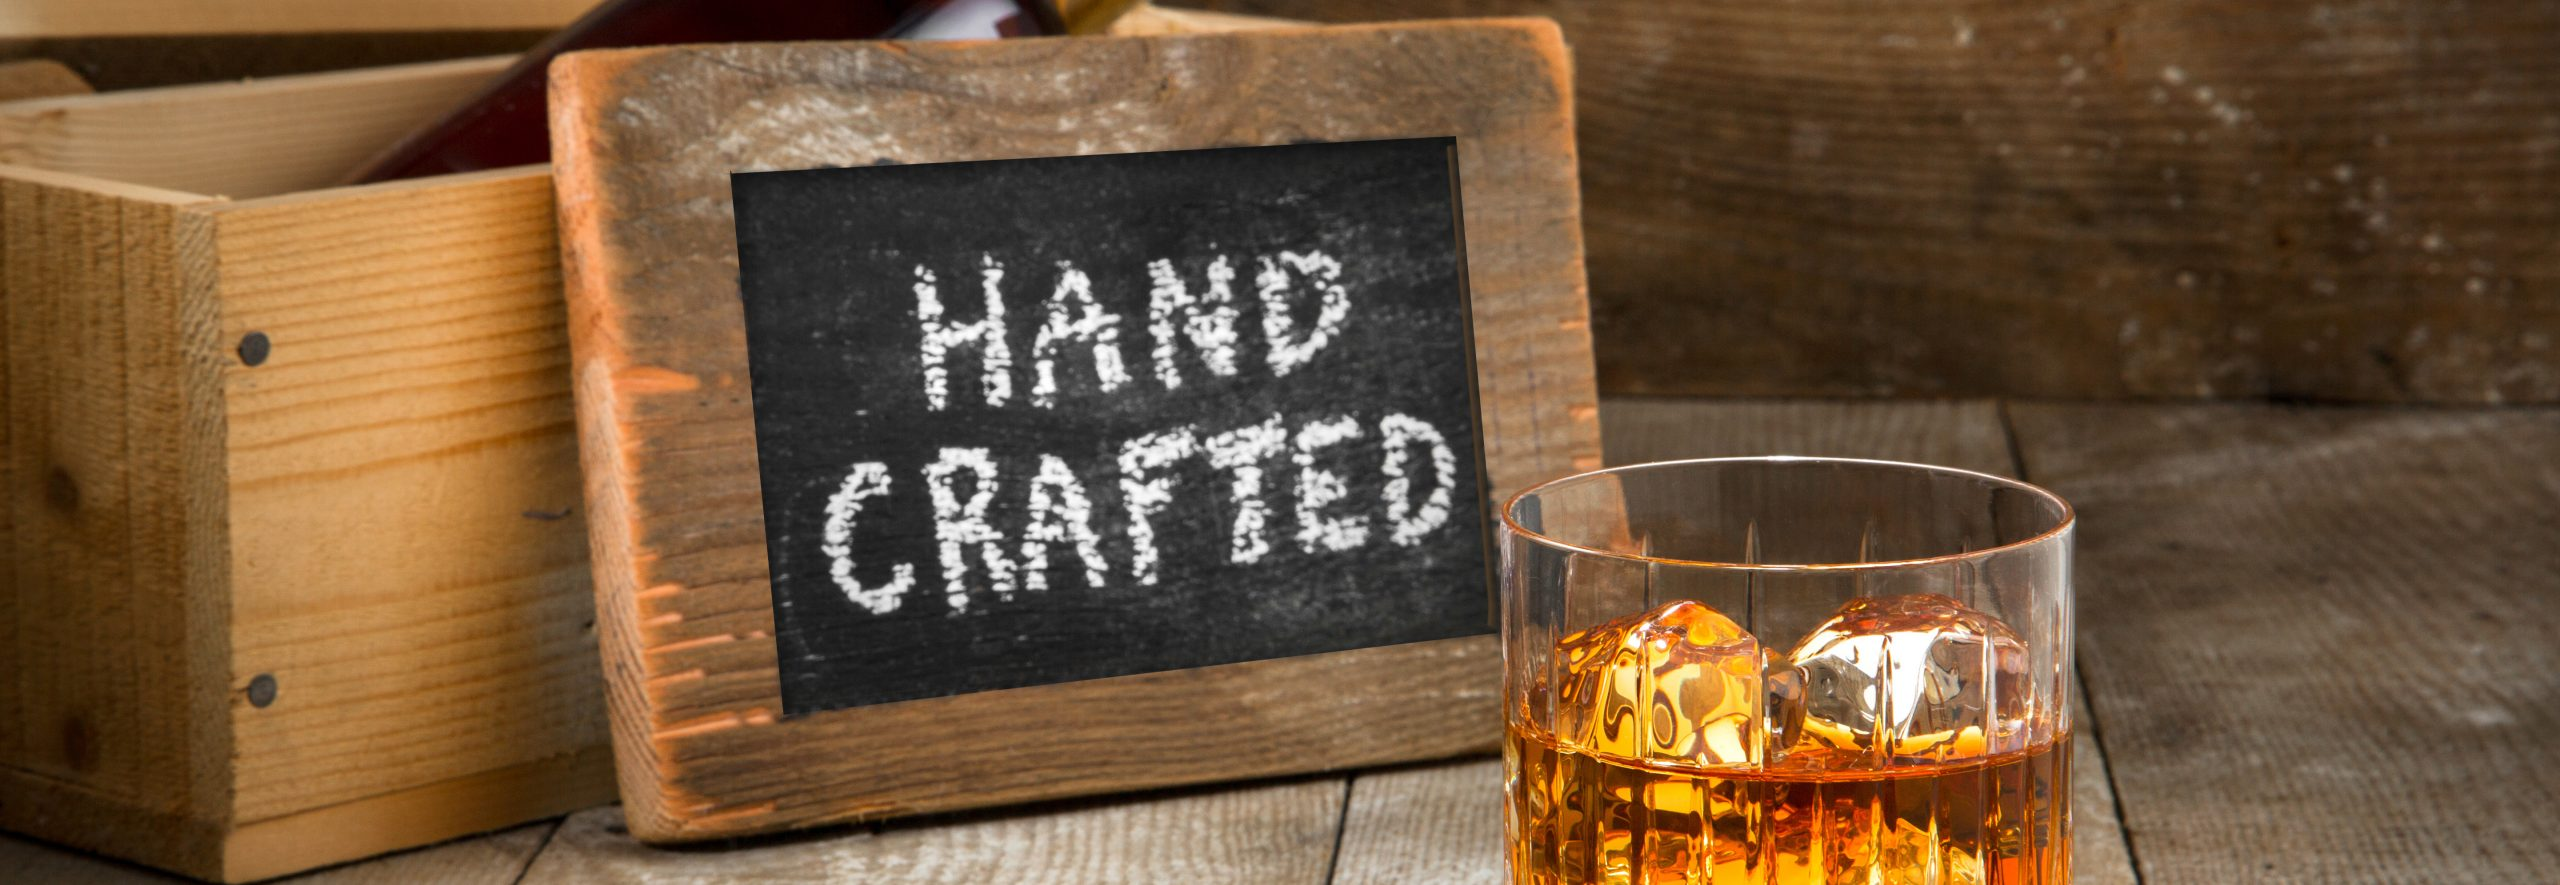 hand crafted sign